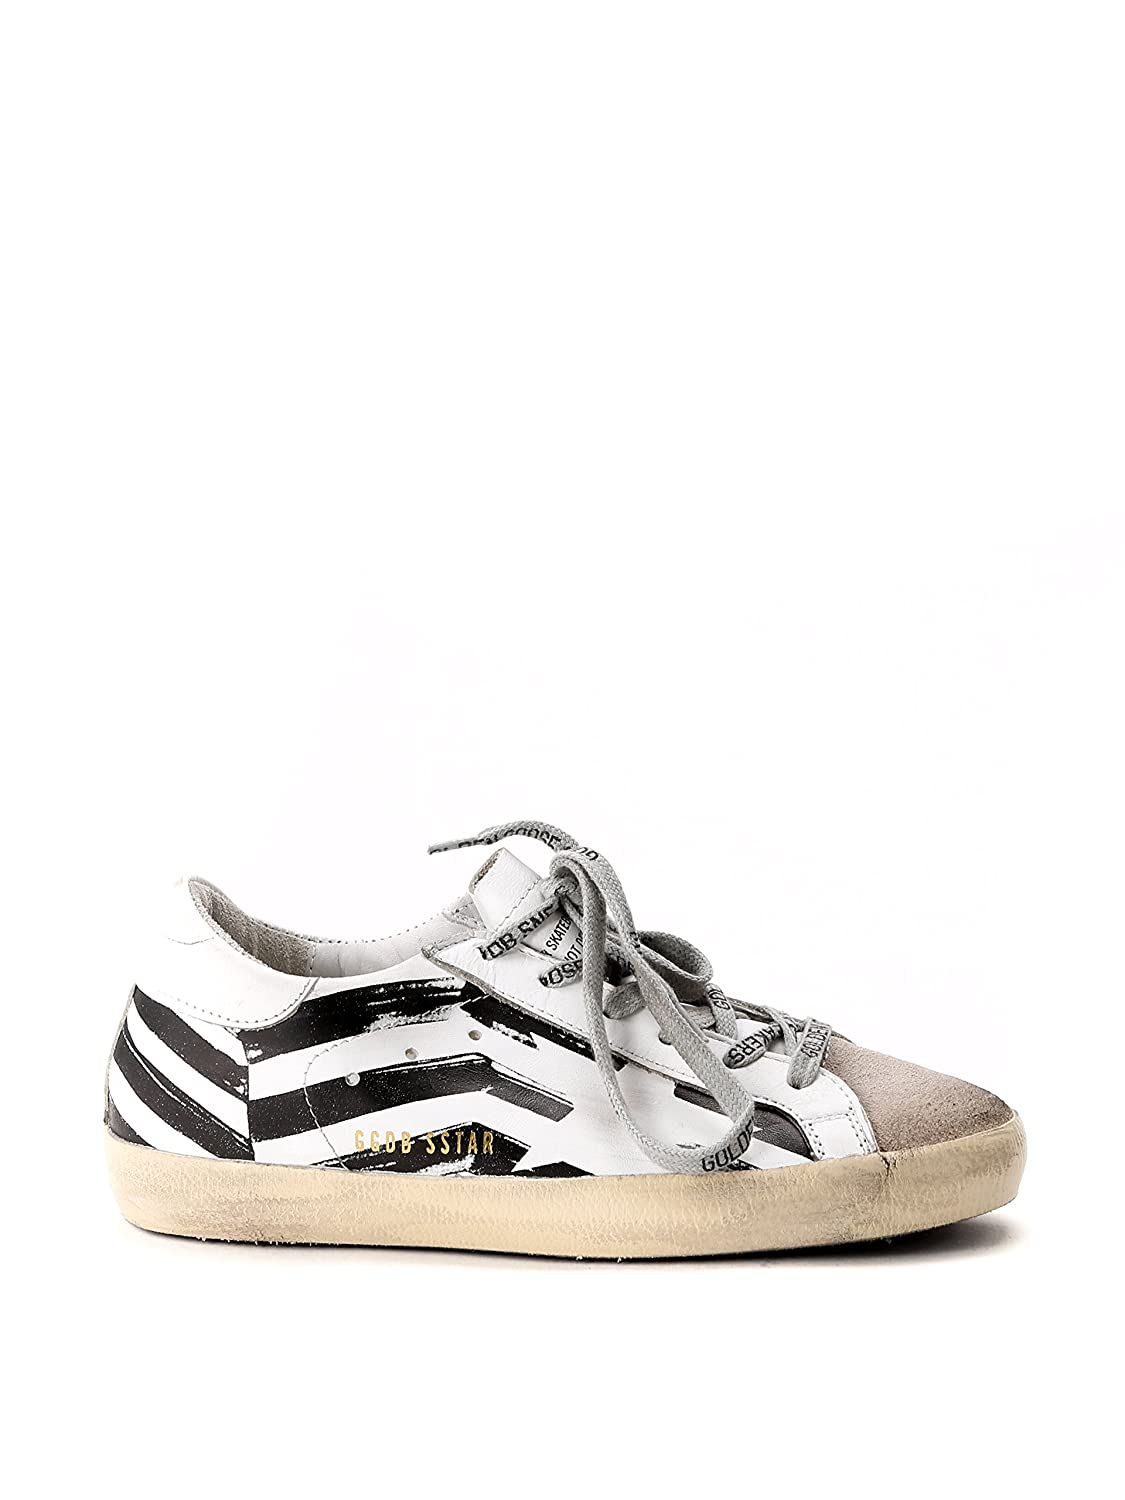 224b15357a23e good GOLDEN GOOSE WOMEN'S GCOWS590K1 WHITE/BLACK LEATHER SNEAKERS ...